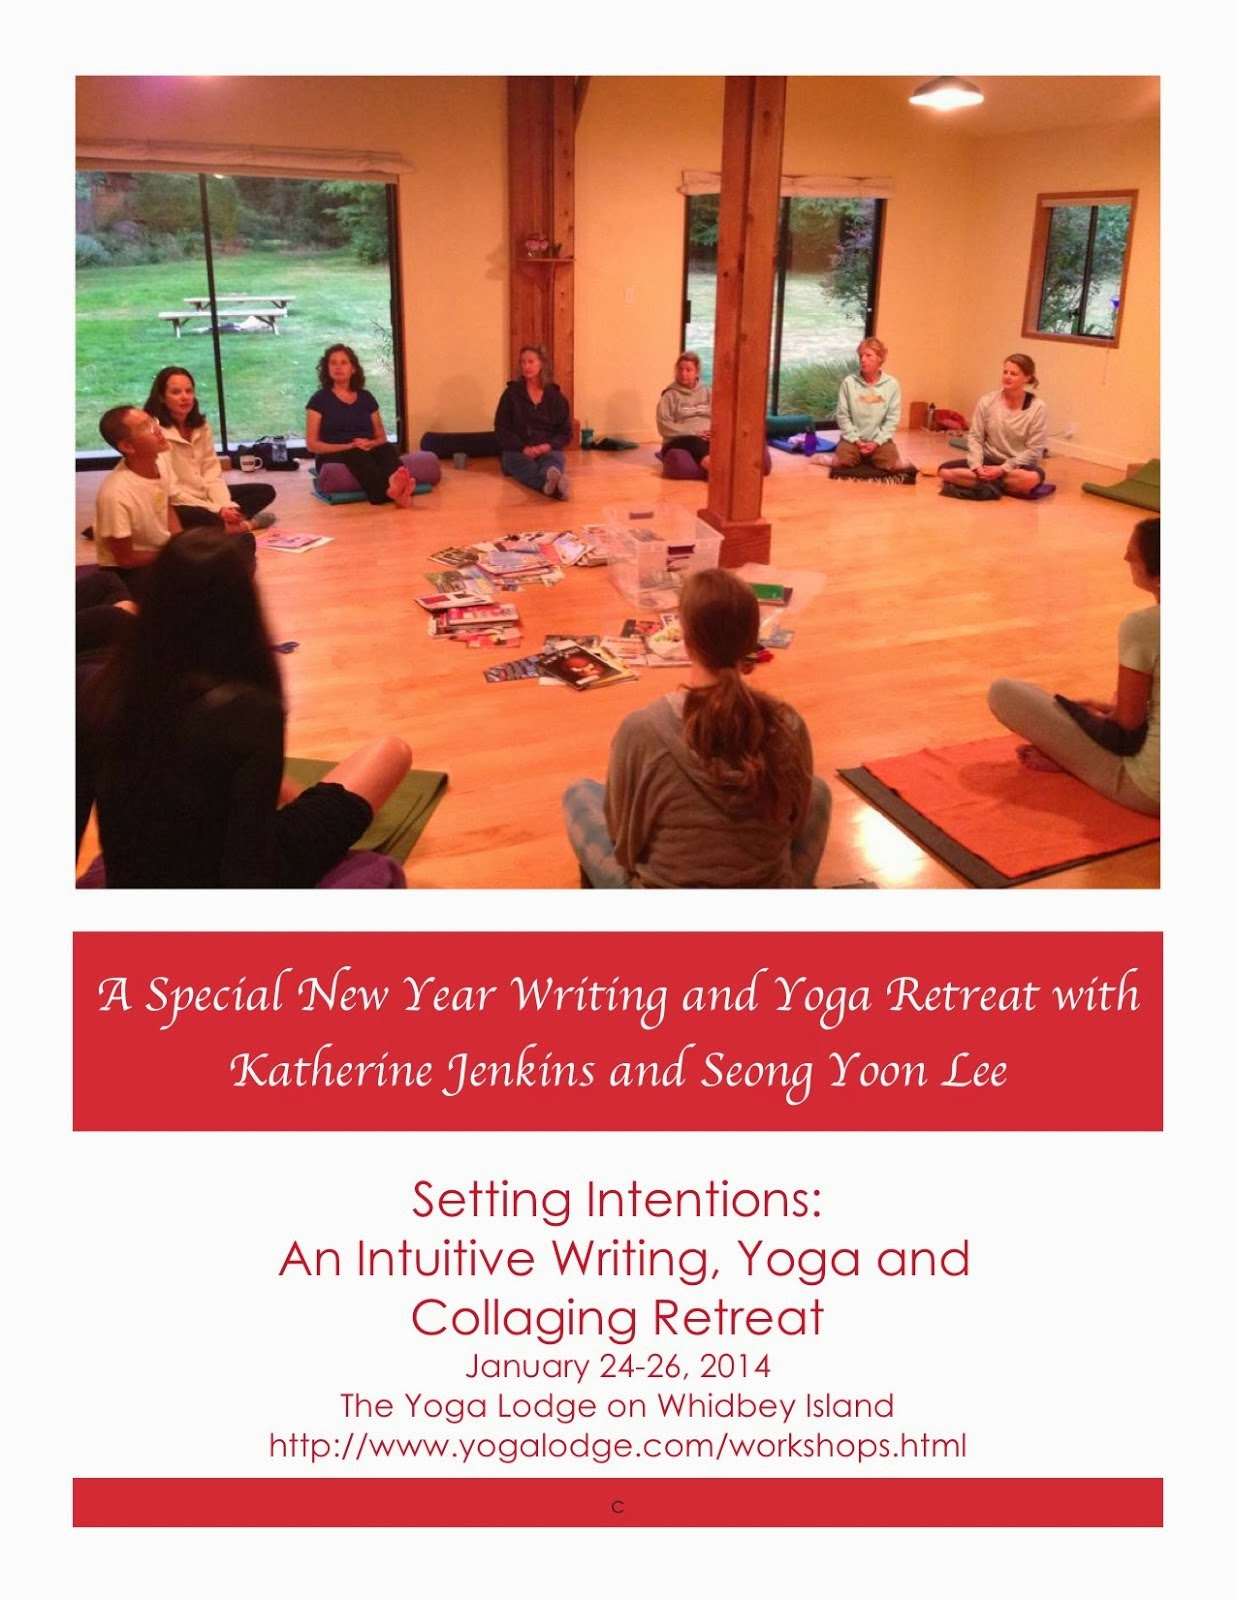 2014 YOGA AND WRITING RETREATS